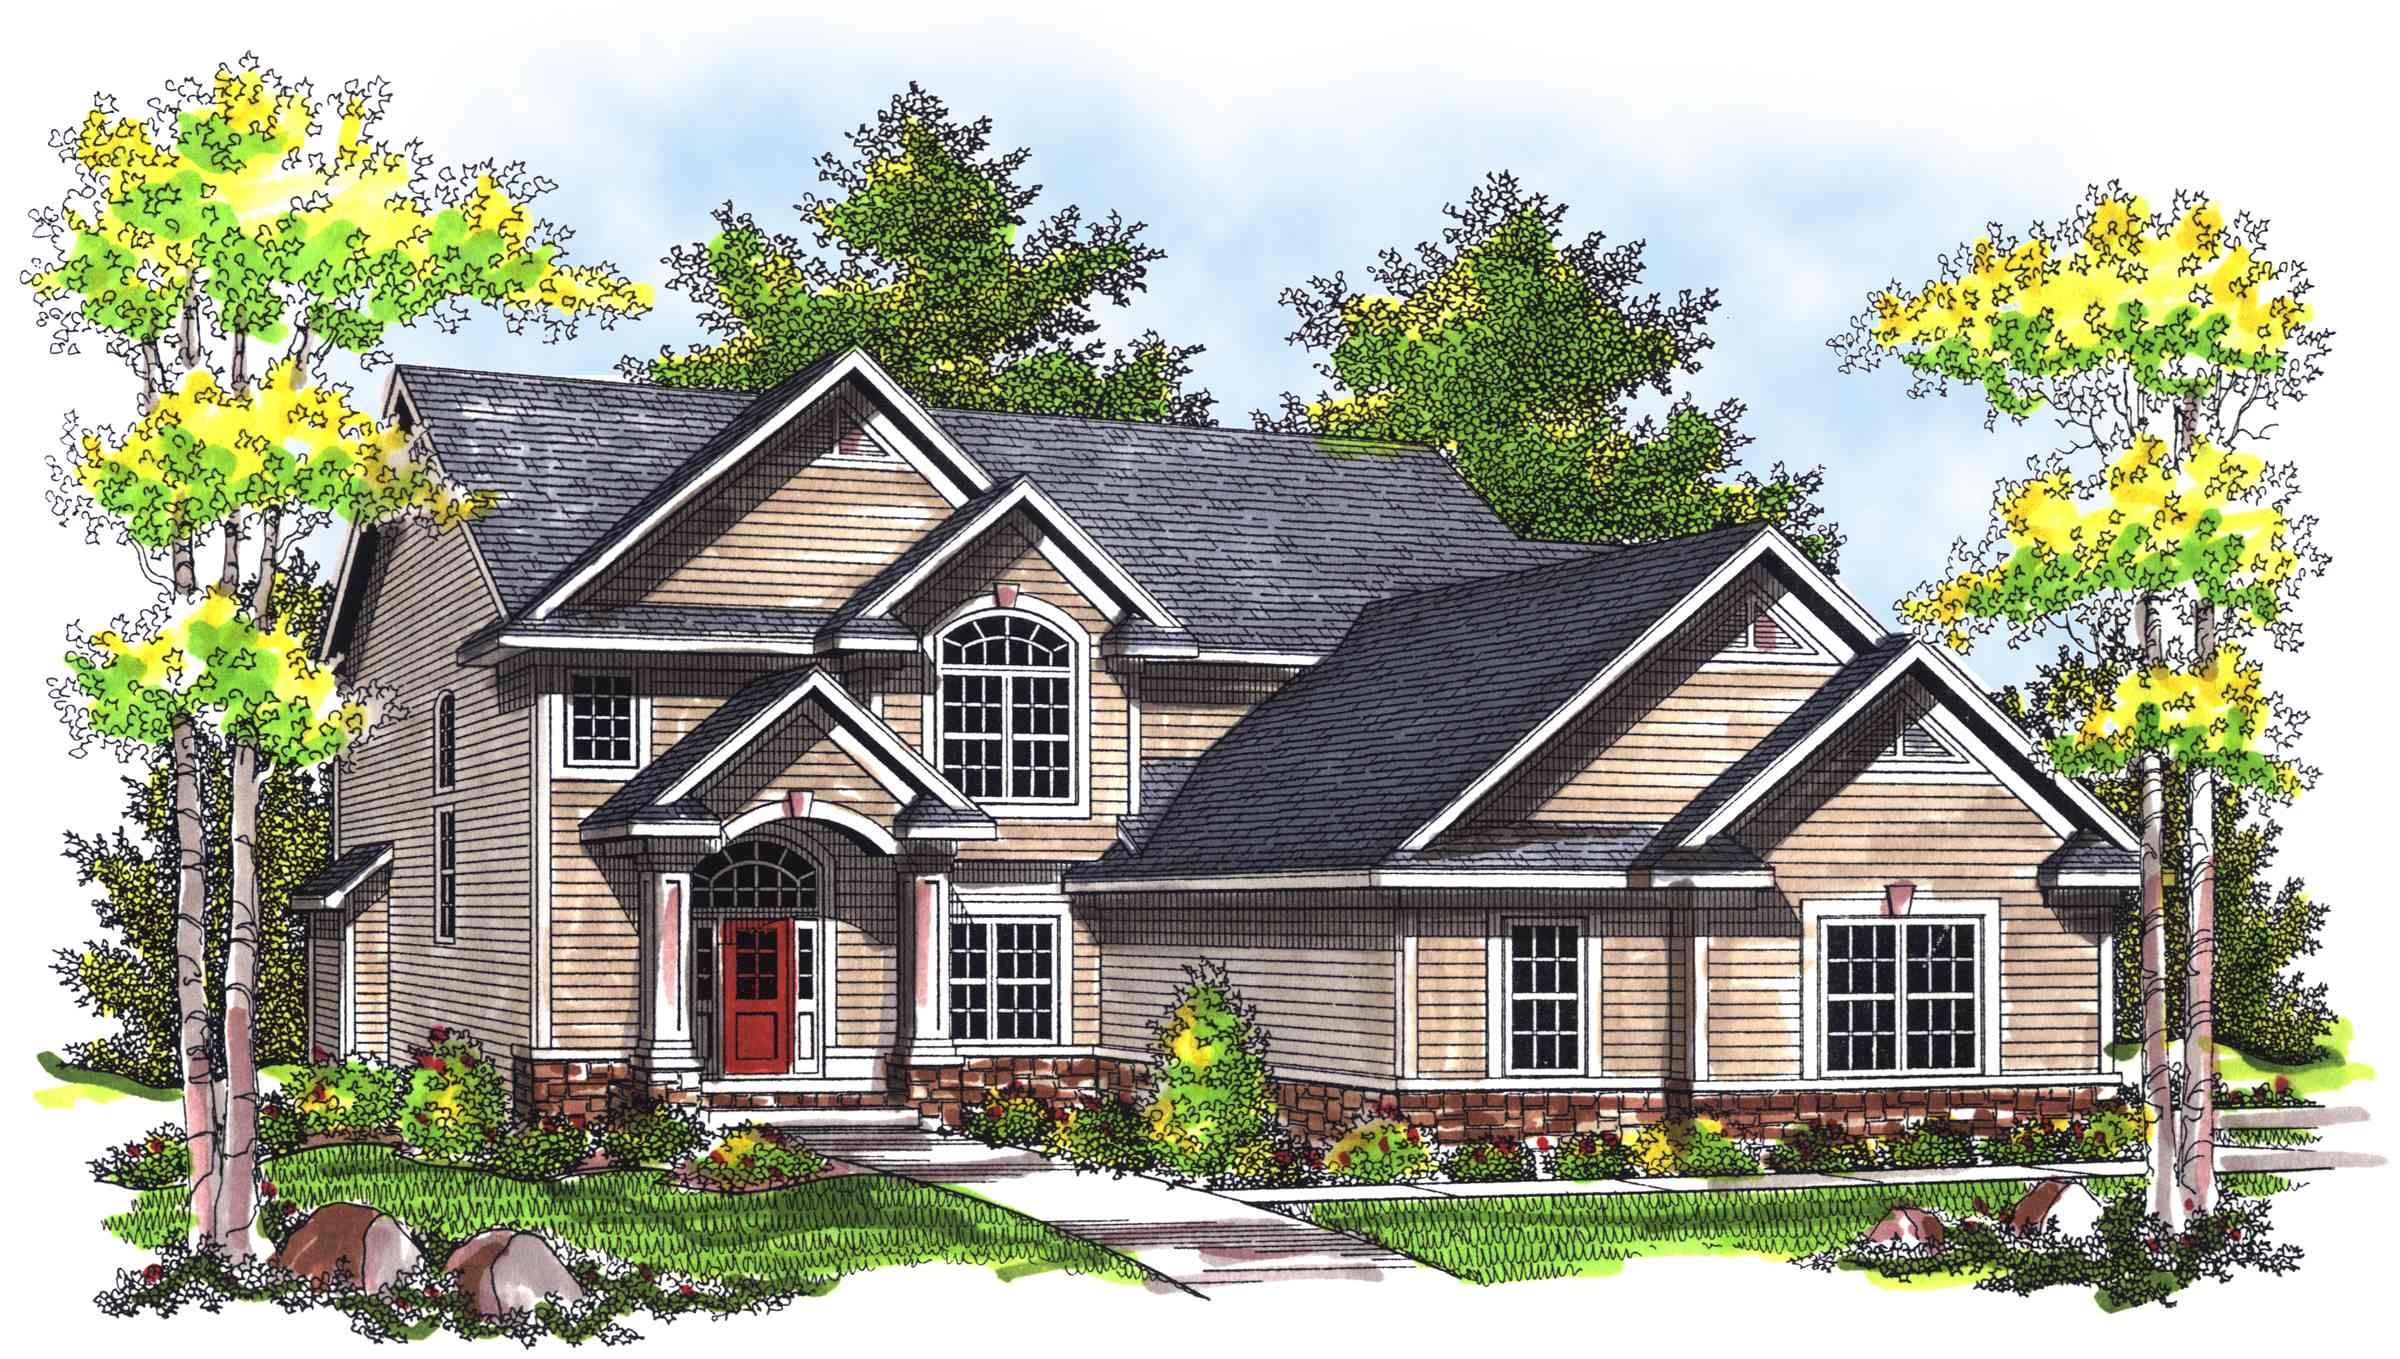 Traditional two story home plan 89323ah 2nd floor 2 story traditional house plans